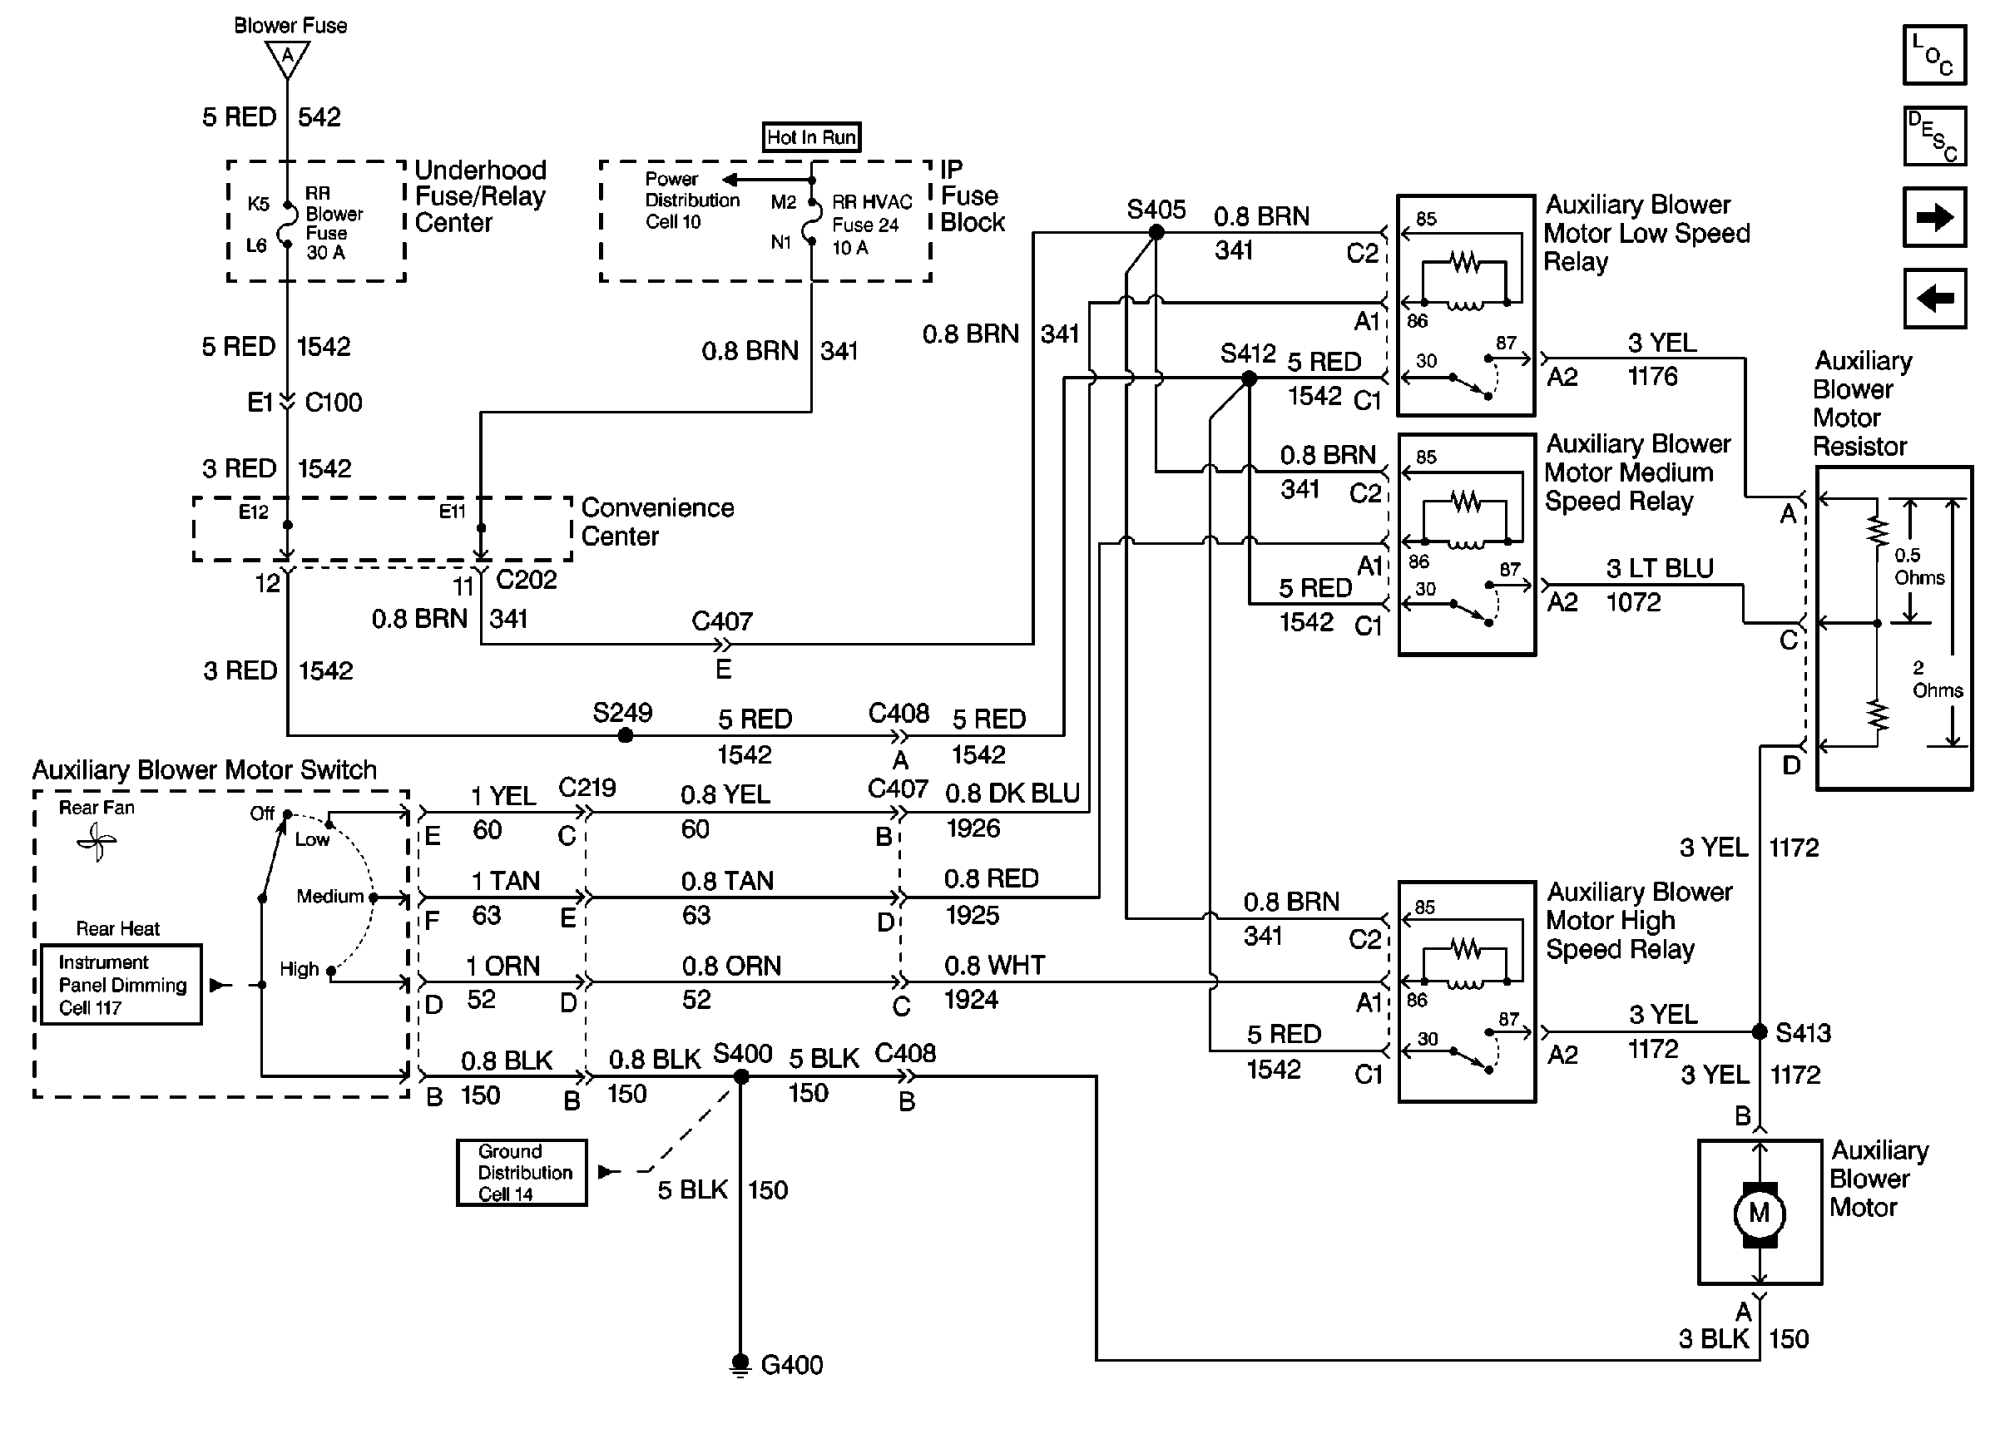 hight resolution of 2007 gmc 3500 trailer wiring diagram wiring diagram source wiring diagram for 2005 chevy malibu 2000